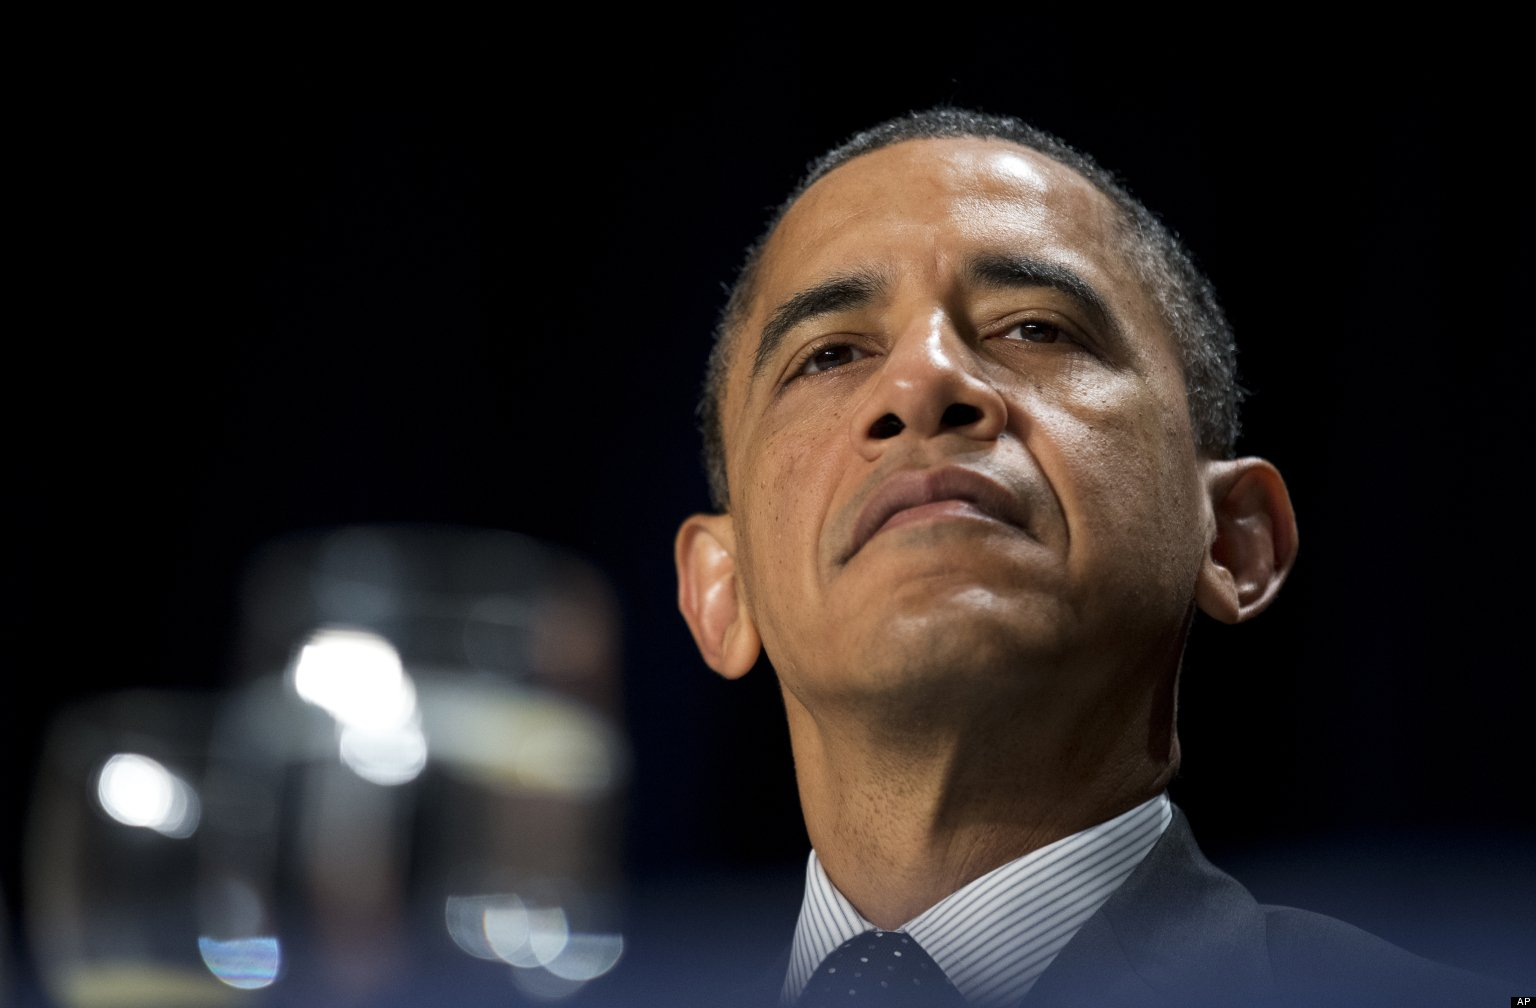 REPORT Obama Used Executive Powers To Benefit Close Friends Private Investment Firms